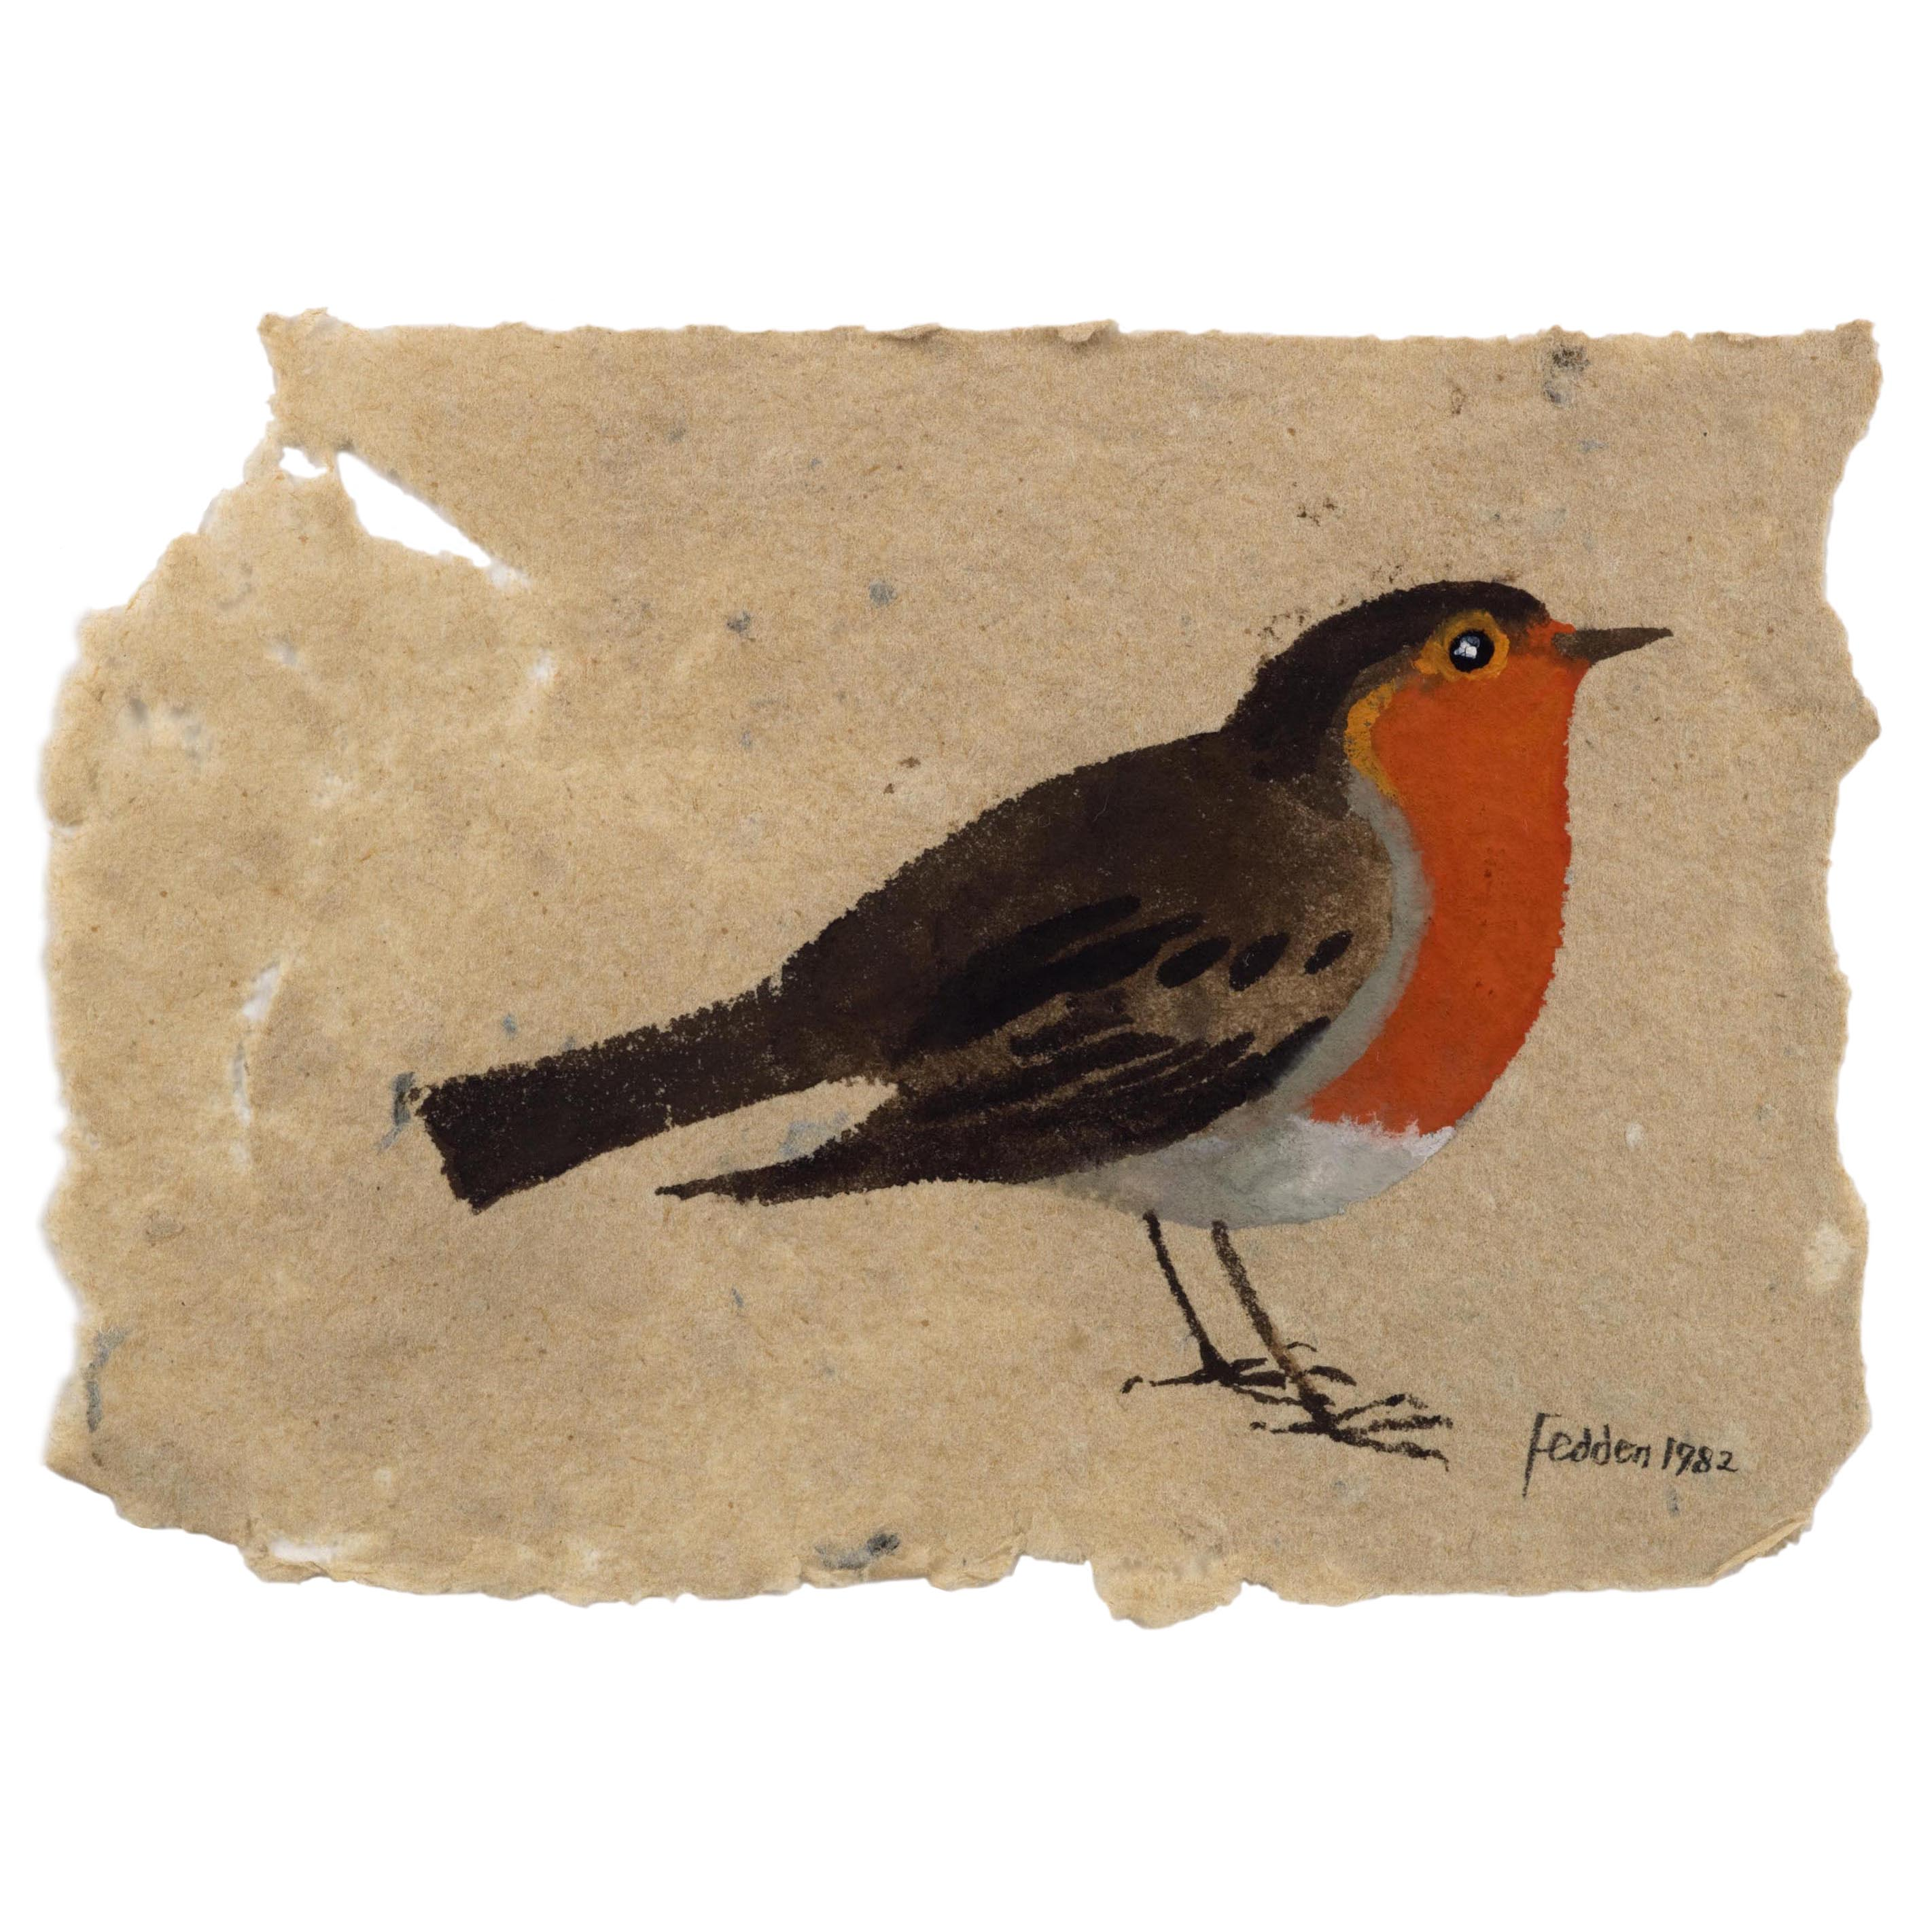 MARY FEDDEN. ROBIN. 1982. SOLD